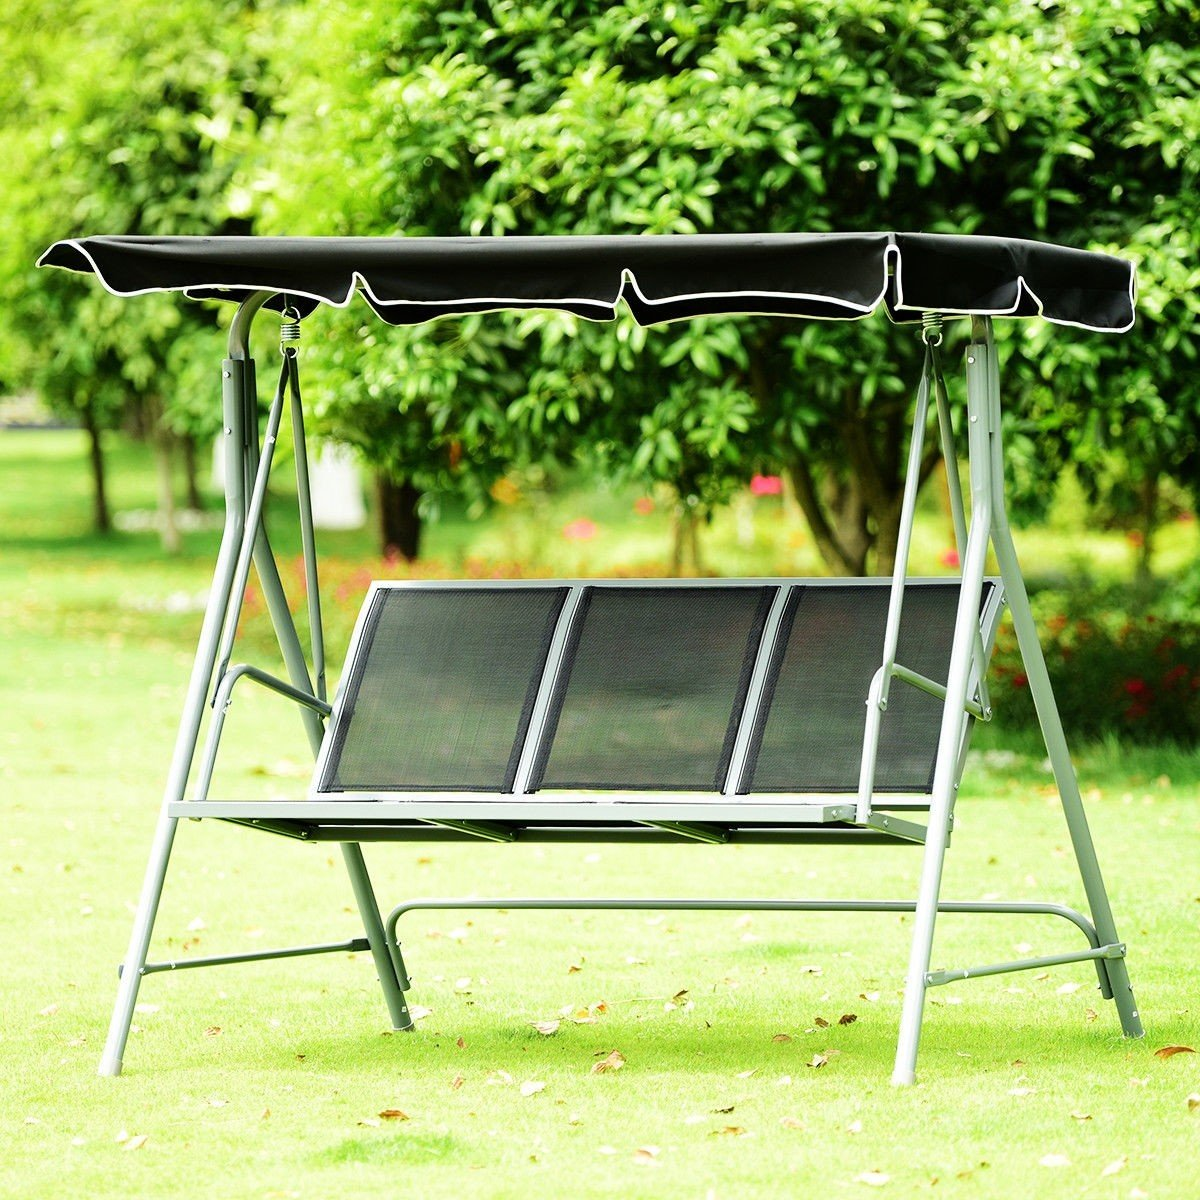 Dayanaprincess 3 Persons Patio Powder Finish Canopy Deck Swing Bench Heavy Duty Steel Construction Outside Chairs for Porch Garden Backyard Decor by Dayanaprincess (Image #3)